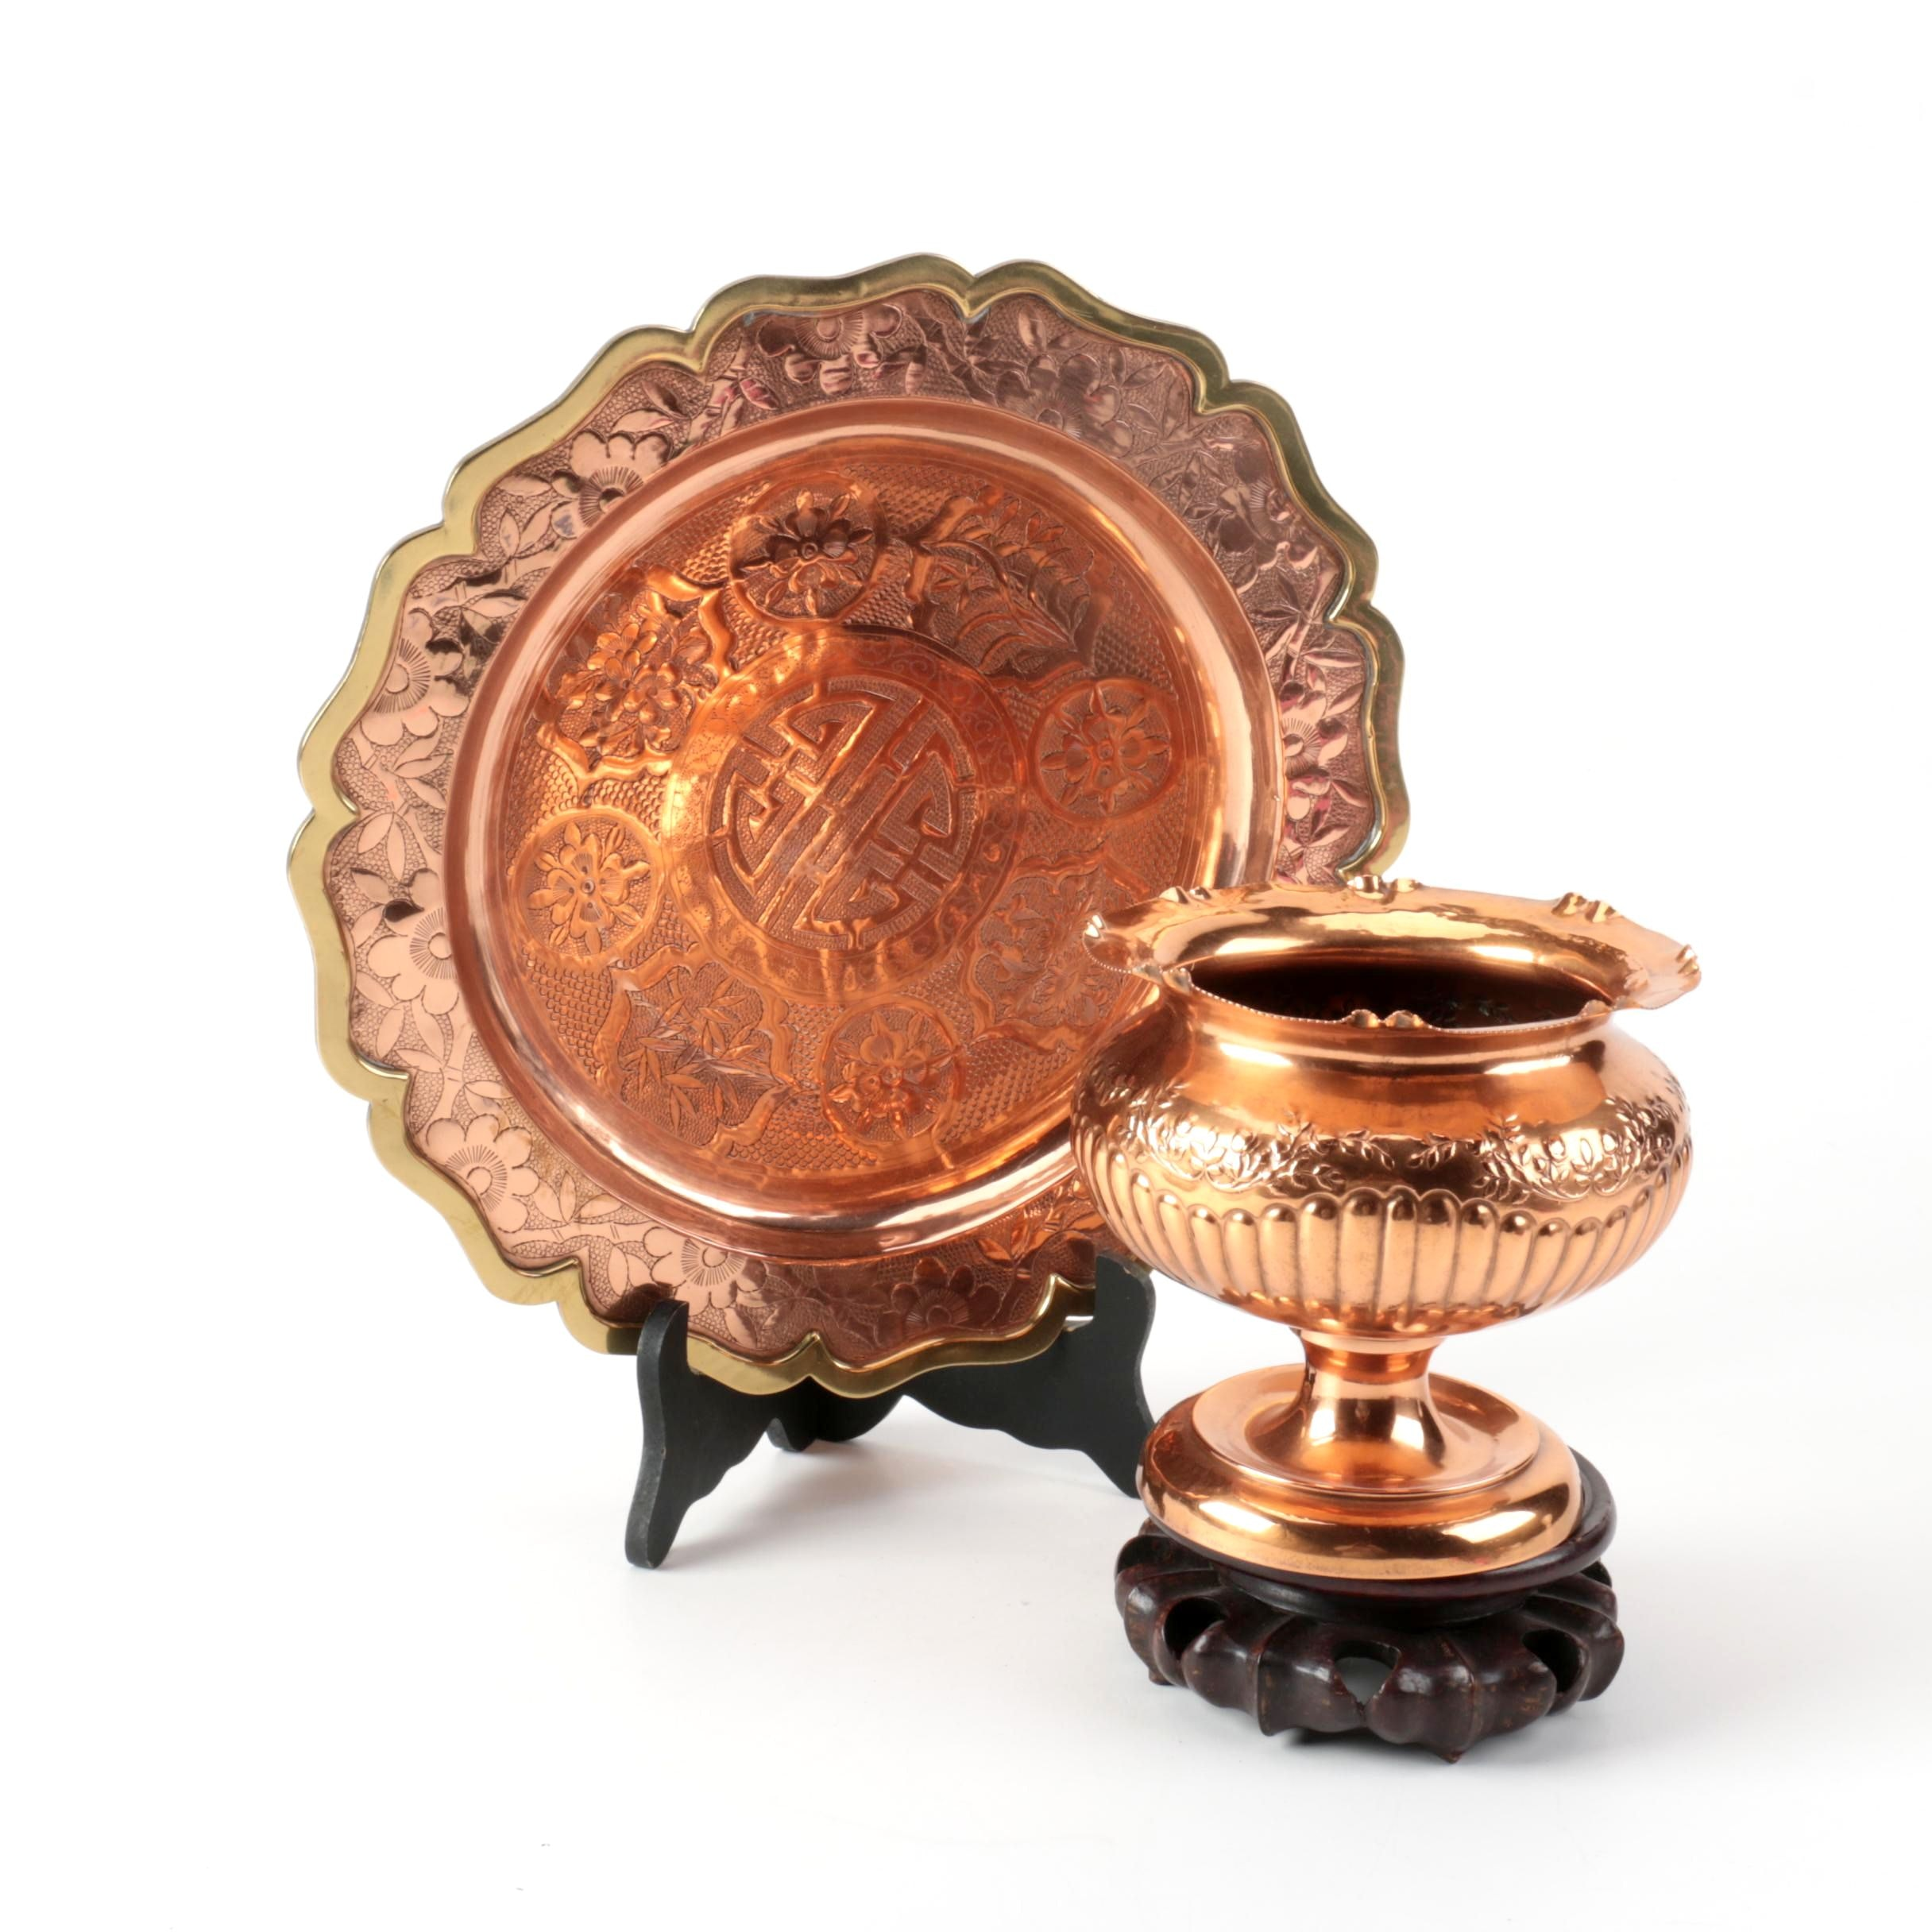 Chinese Inspired Decorative Copper and Brass Plate with a Footed Urn ...  sc 1 st  EBTH.com & Chinese Inspired Decorative Copper and Brass Plate with a Footed ...